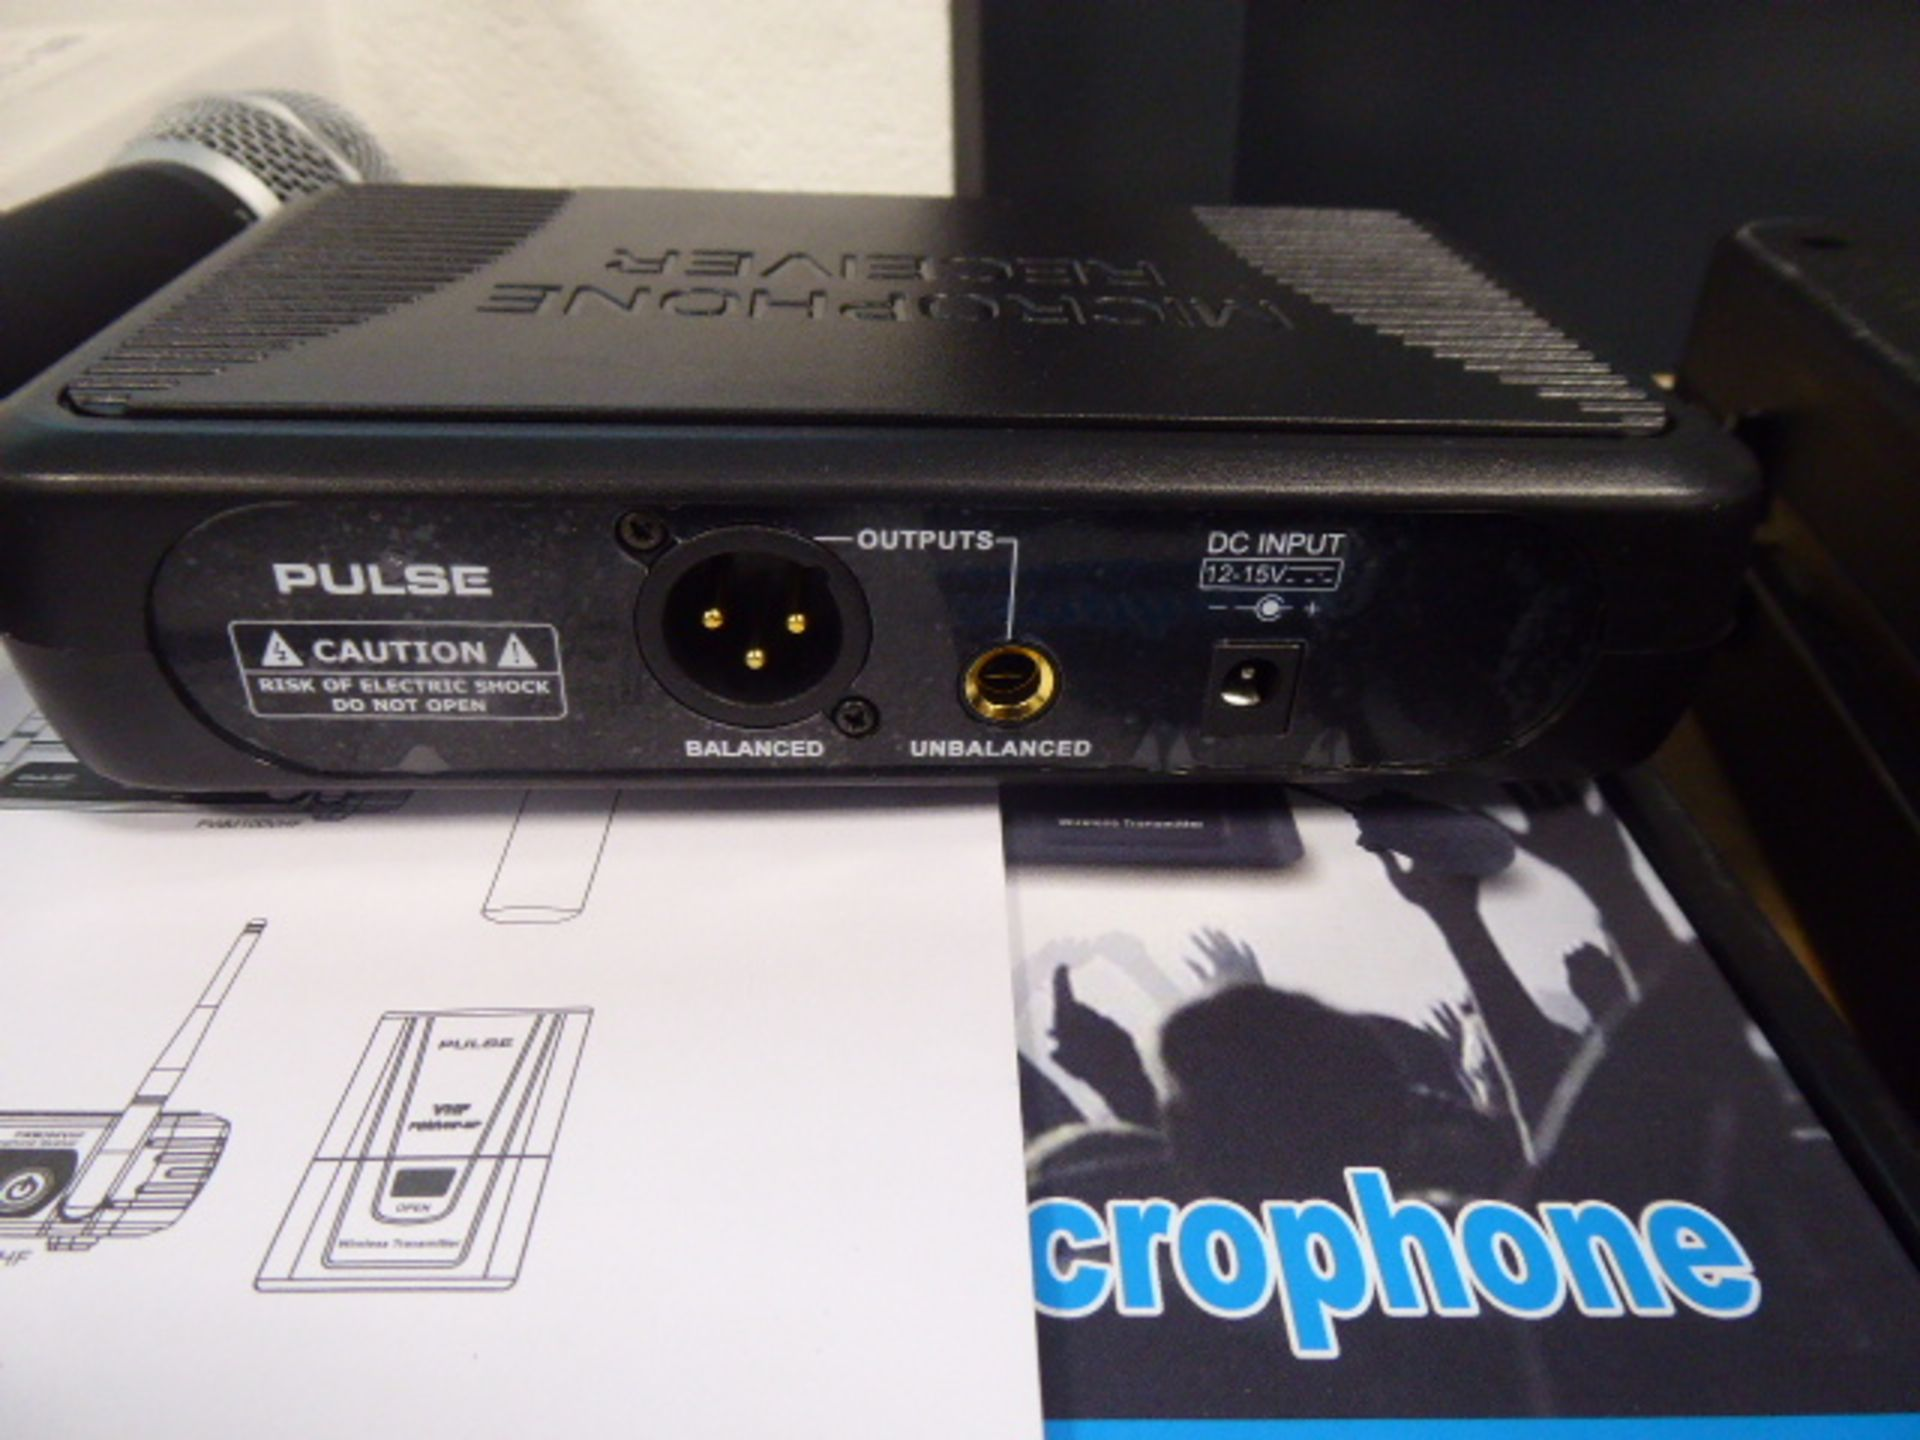 Pulse PWM100 VHF single channel receiver and microphone with box - Image 2 of 3